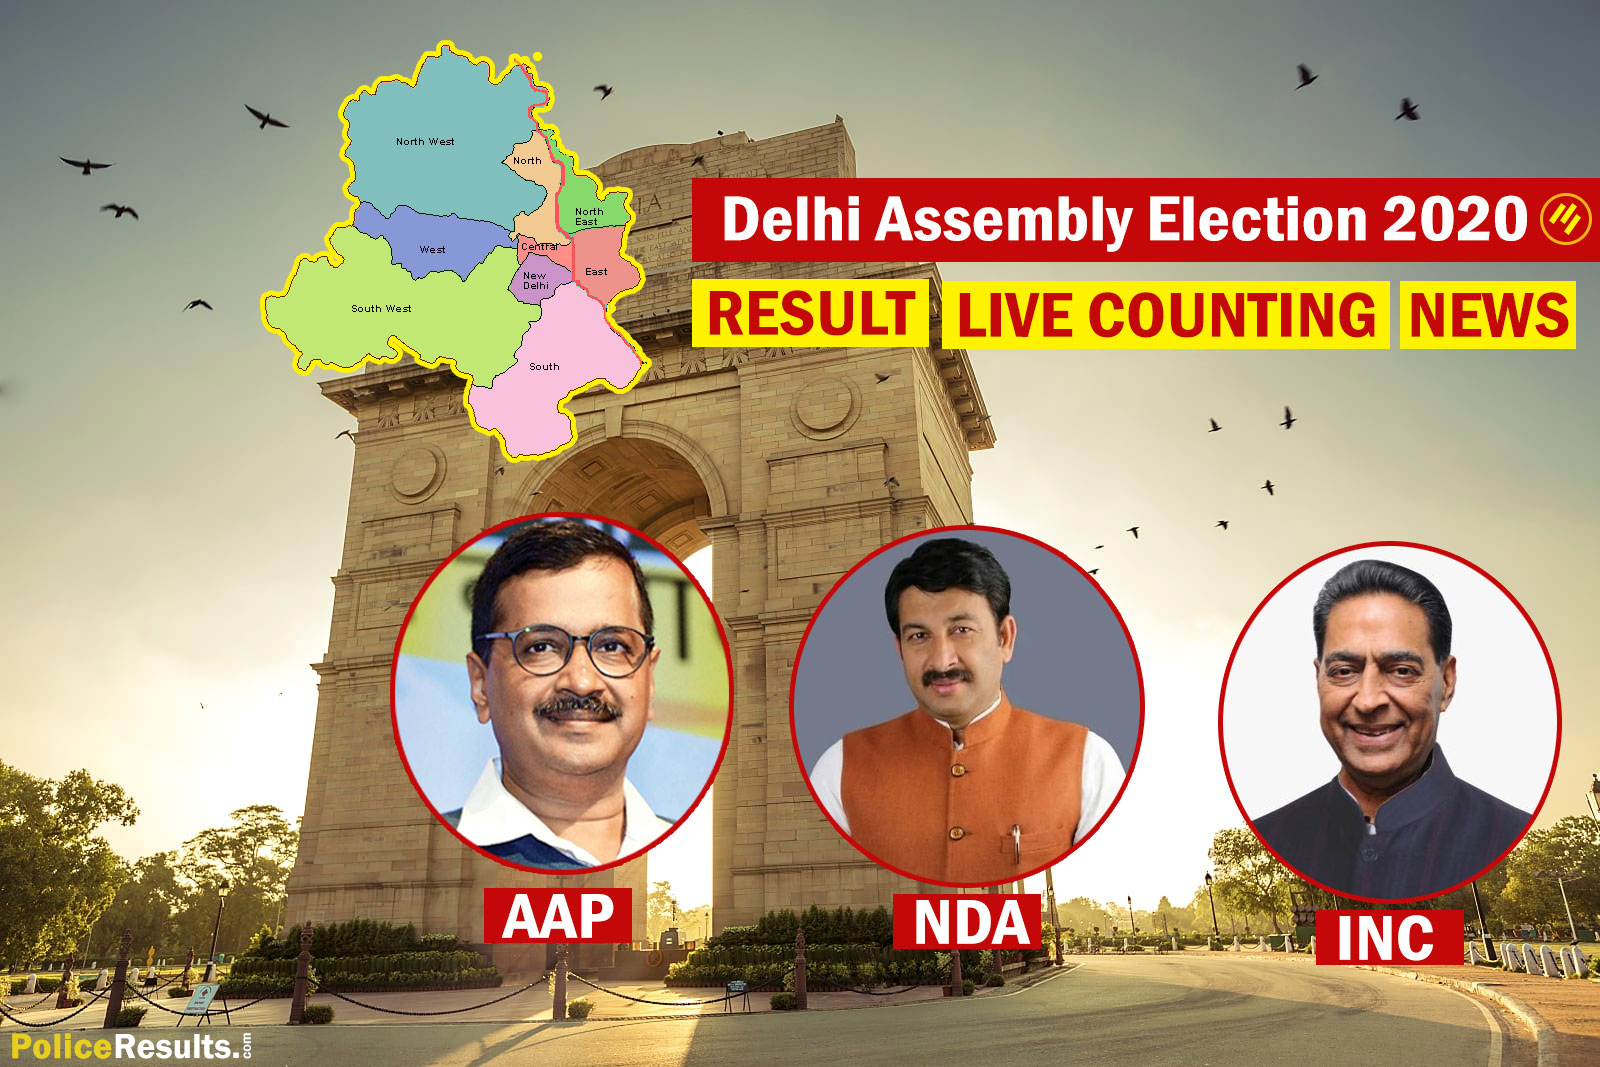 Delhi Election Result 2020 – Live Counting, Constituency Wise, Party Wise (APP, BJP, Congress, JDU, RJD, BSP), Candidates Wise Winner Name List, Latest News Updates